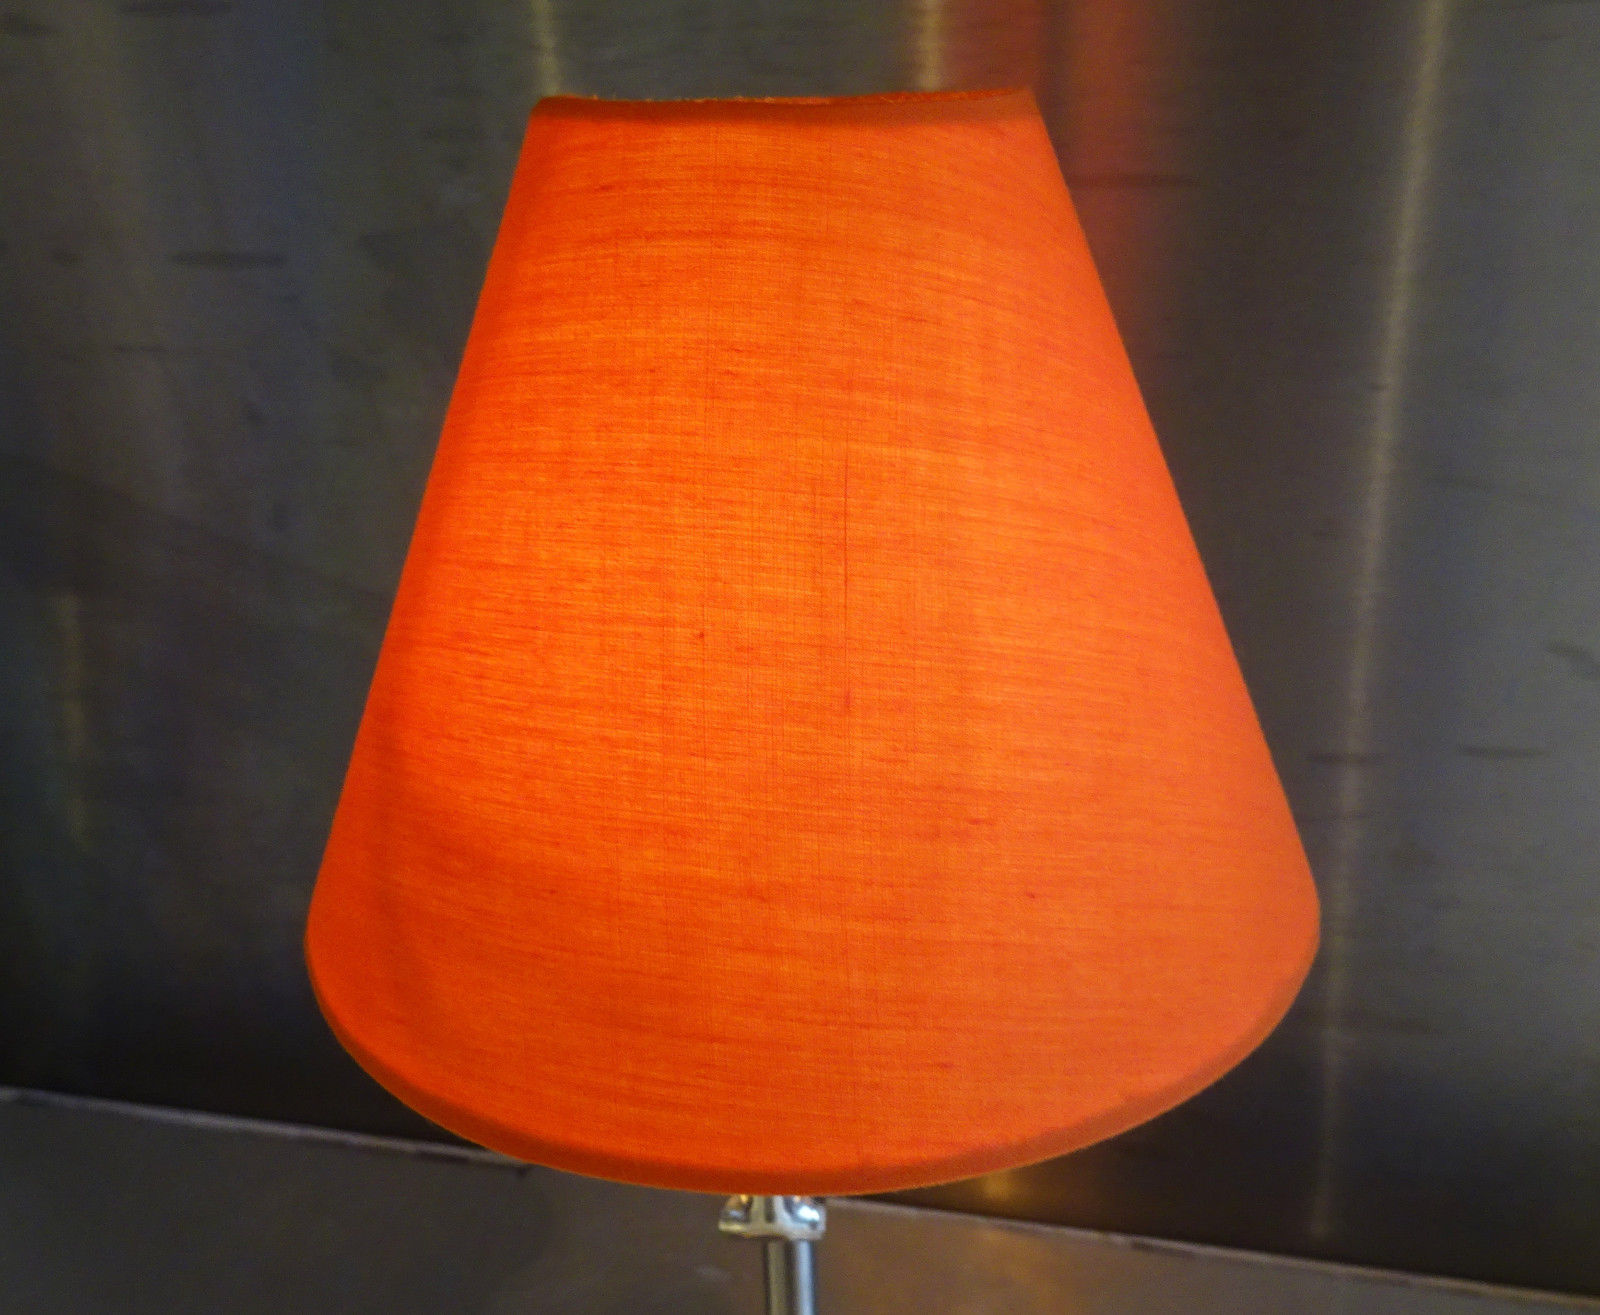 CANDLE LAMPSHADE CLIP-ON CHANDELIER WALL LIGHT PENDANT SHADE ORANGE RETRO KITSCH - Cheap ...